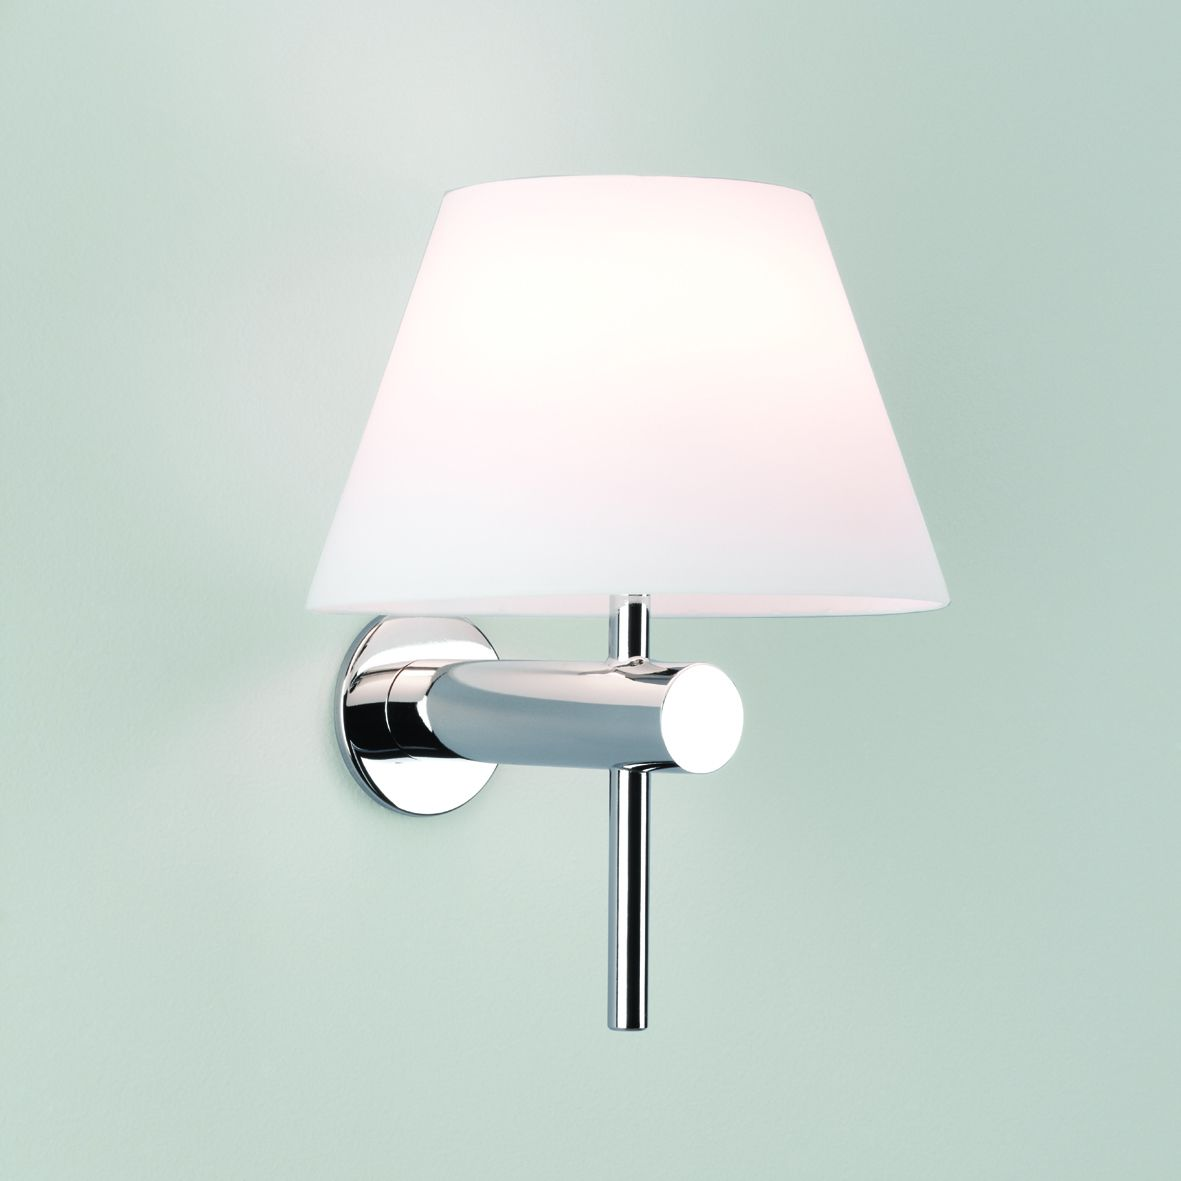 Wall Mountable Lamps : Wall lamps - lighting fixtures that are mounted on walls Warisan Lighting